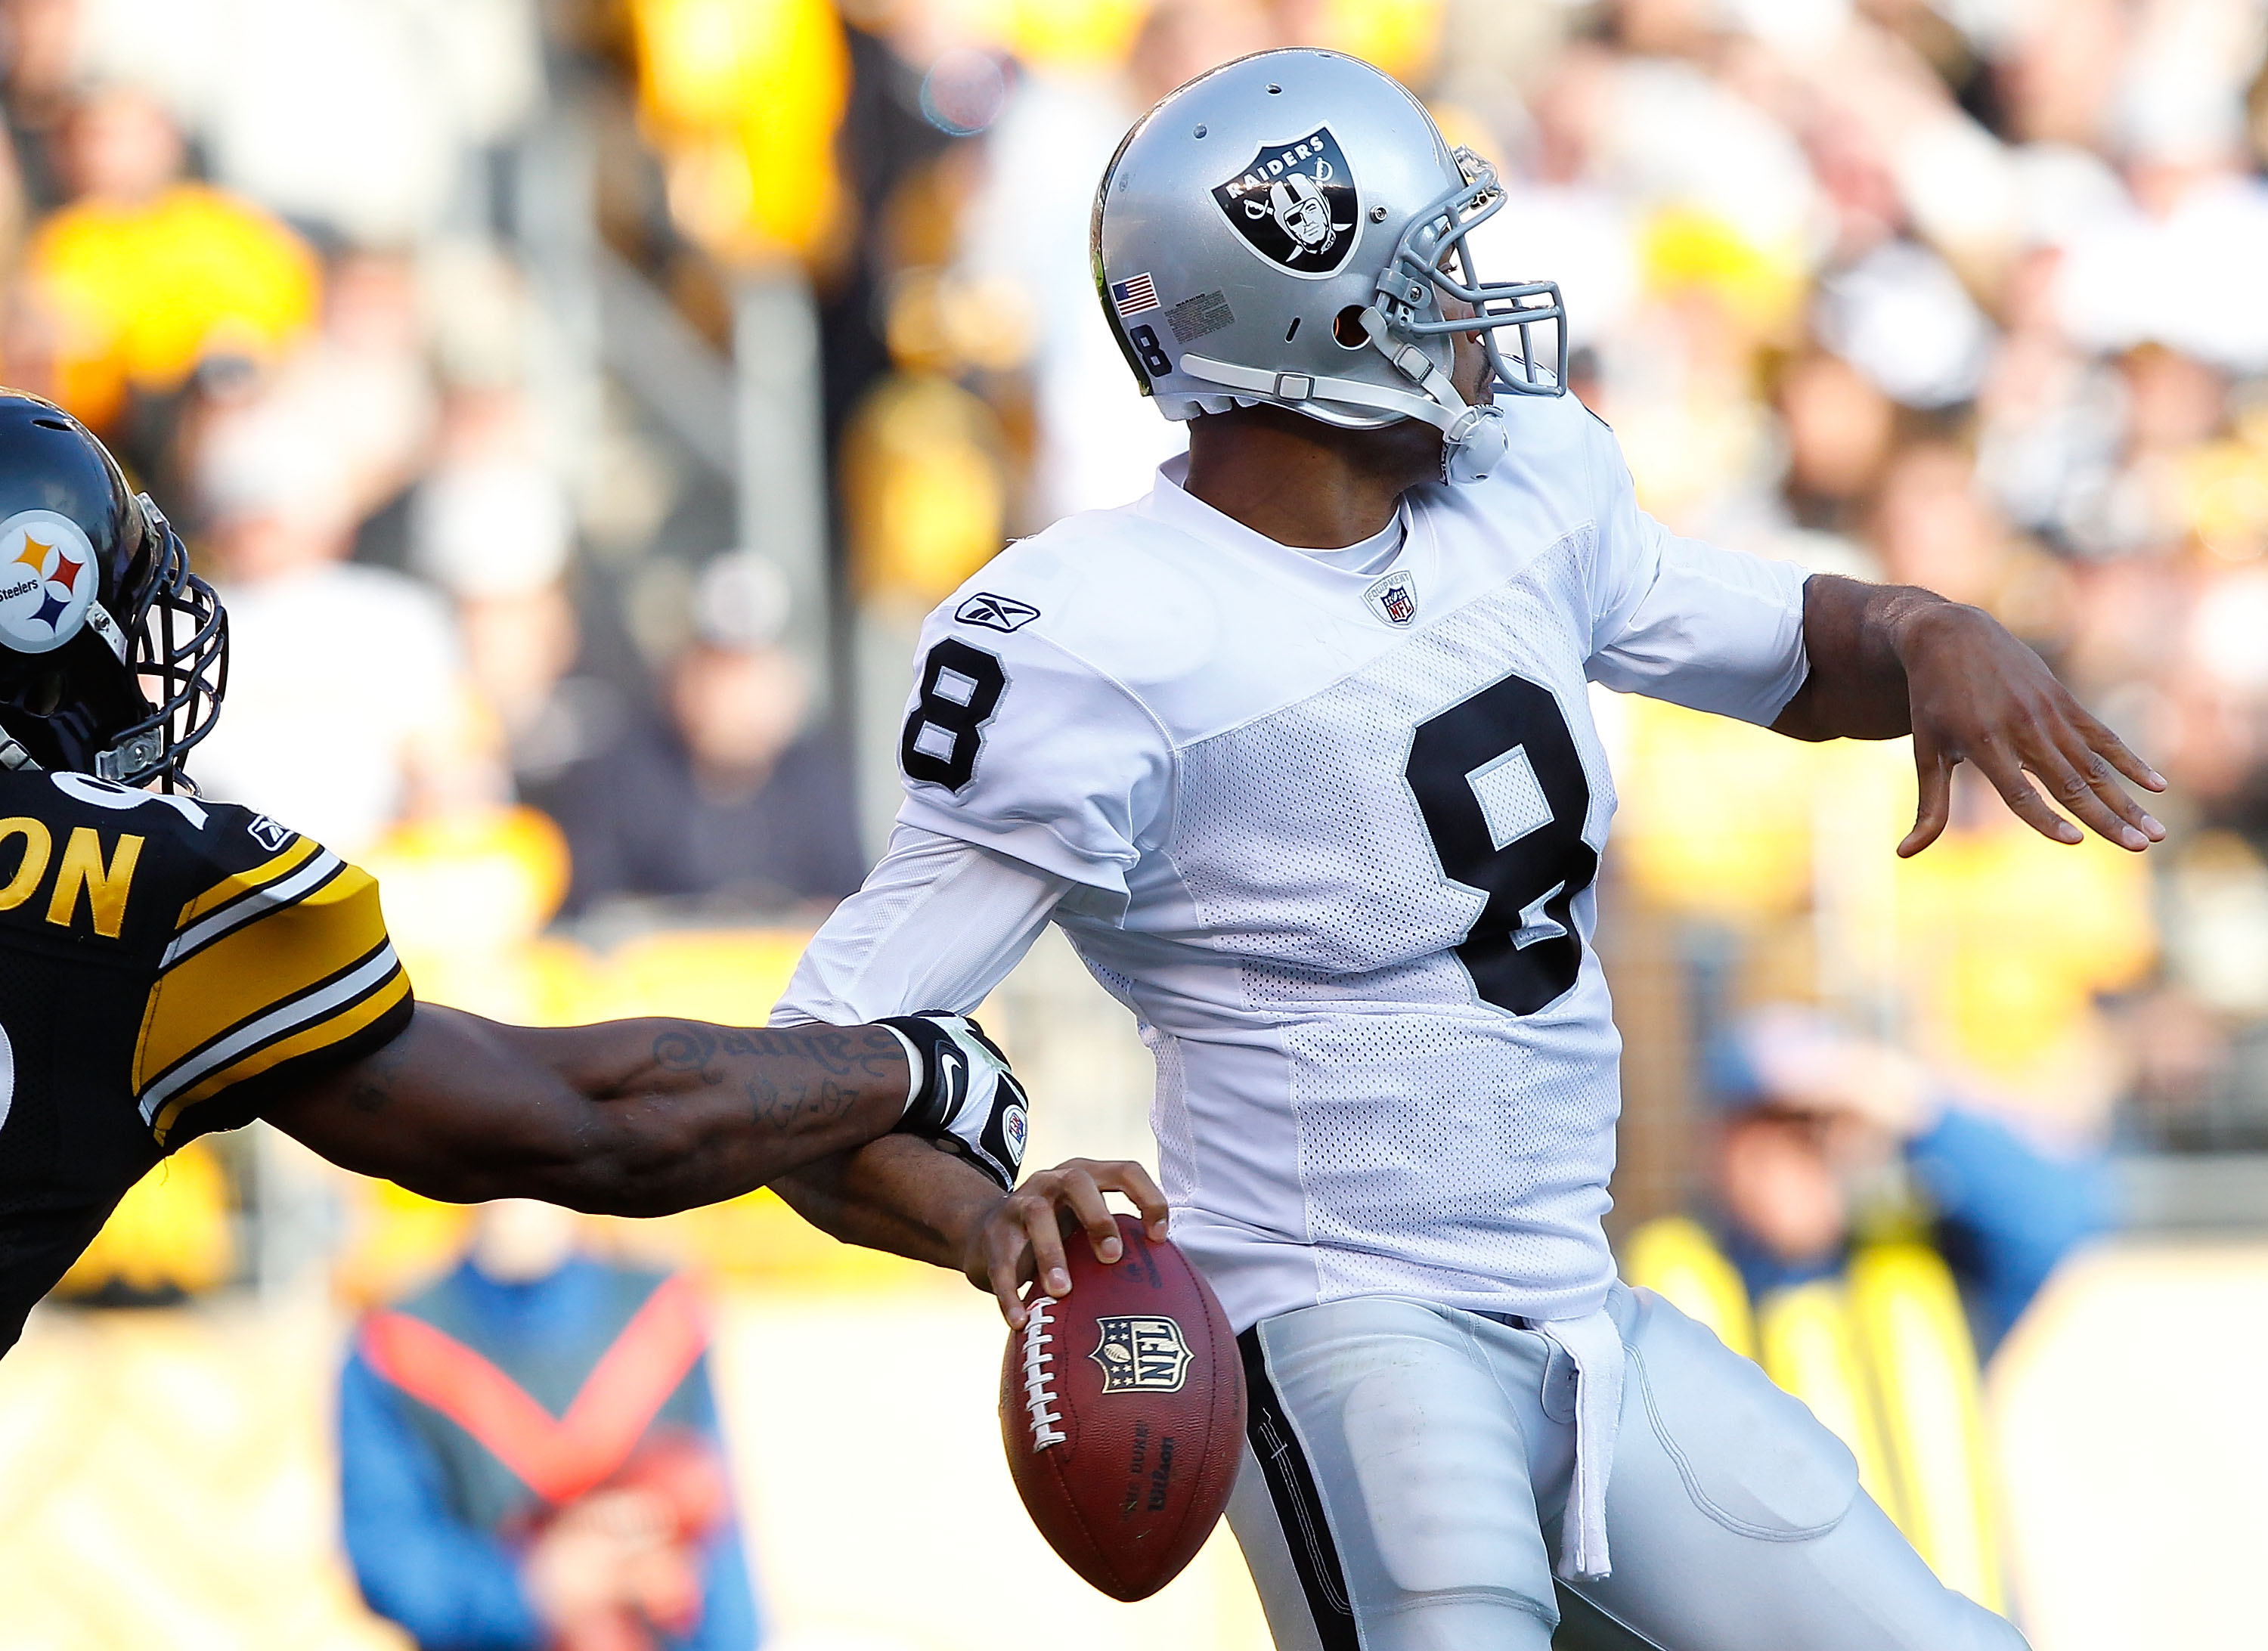 PITTSBURGH - NOVEMBER 21:  Jason Campbell #8 of the Oakland Raiders has the ball stripped from his hand by James Harrison #92 of the Pittsburgh Steelers during the game on November 21, 2010 at Heinz Field in Pittsburgh, Pennsylvania.  (Photo by Jared Wick